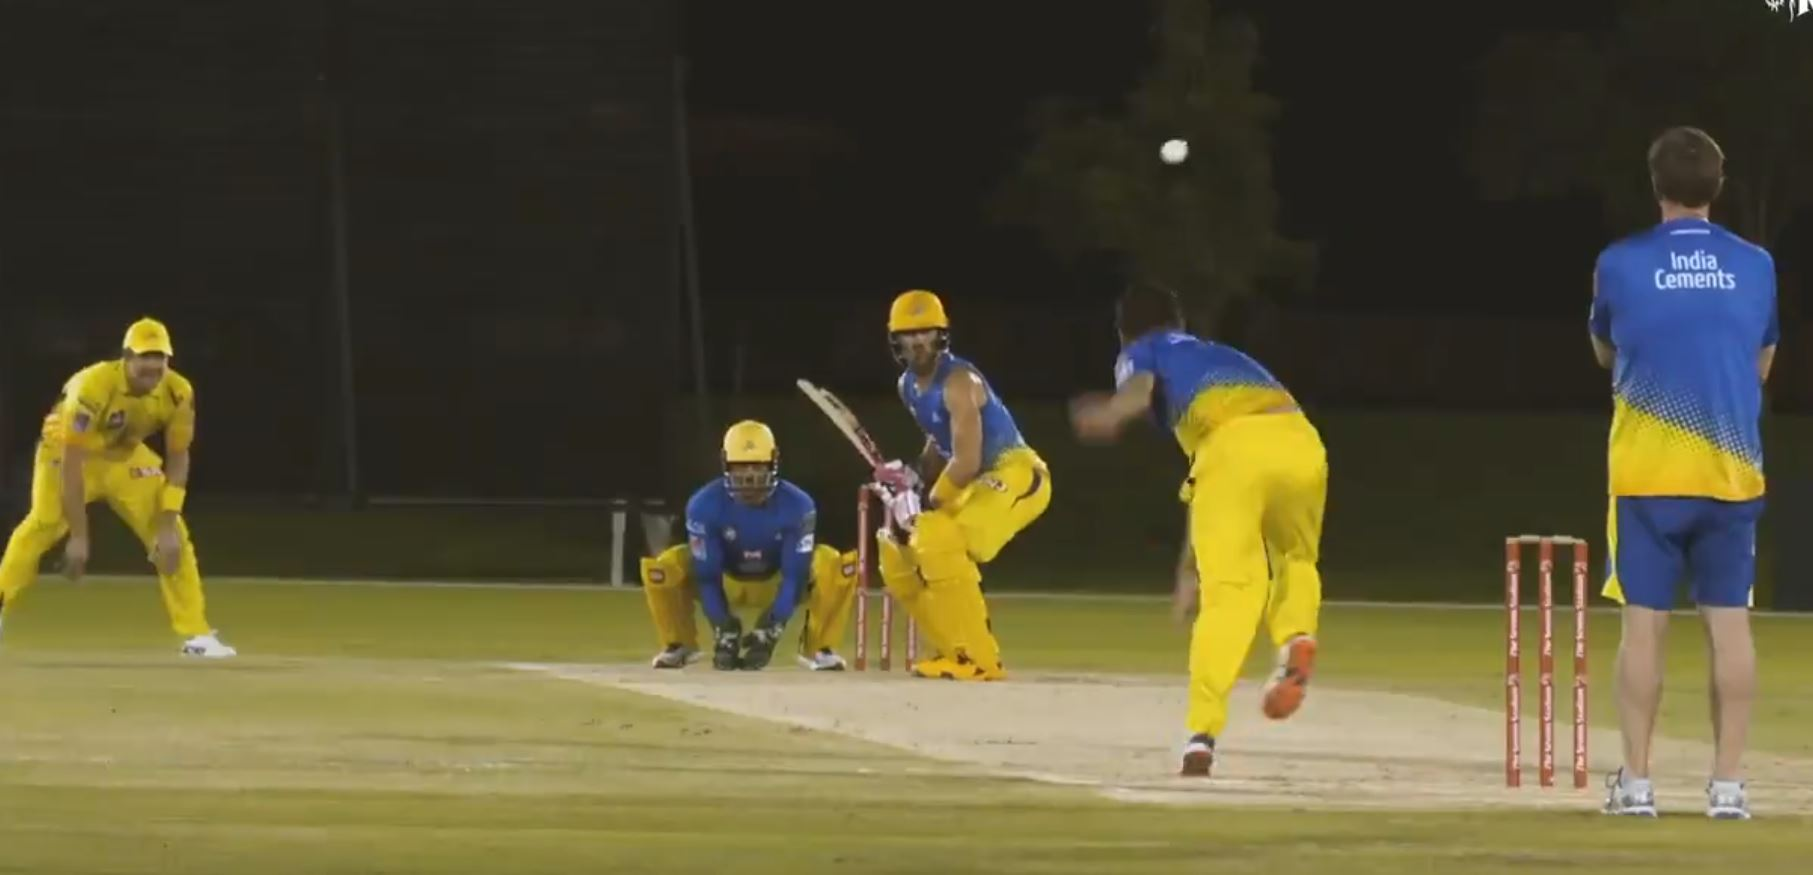 Chawla bowls to Faf du Plessis, while Dhoni keeps wickets and Watson waits in slips | CSK Twitter